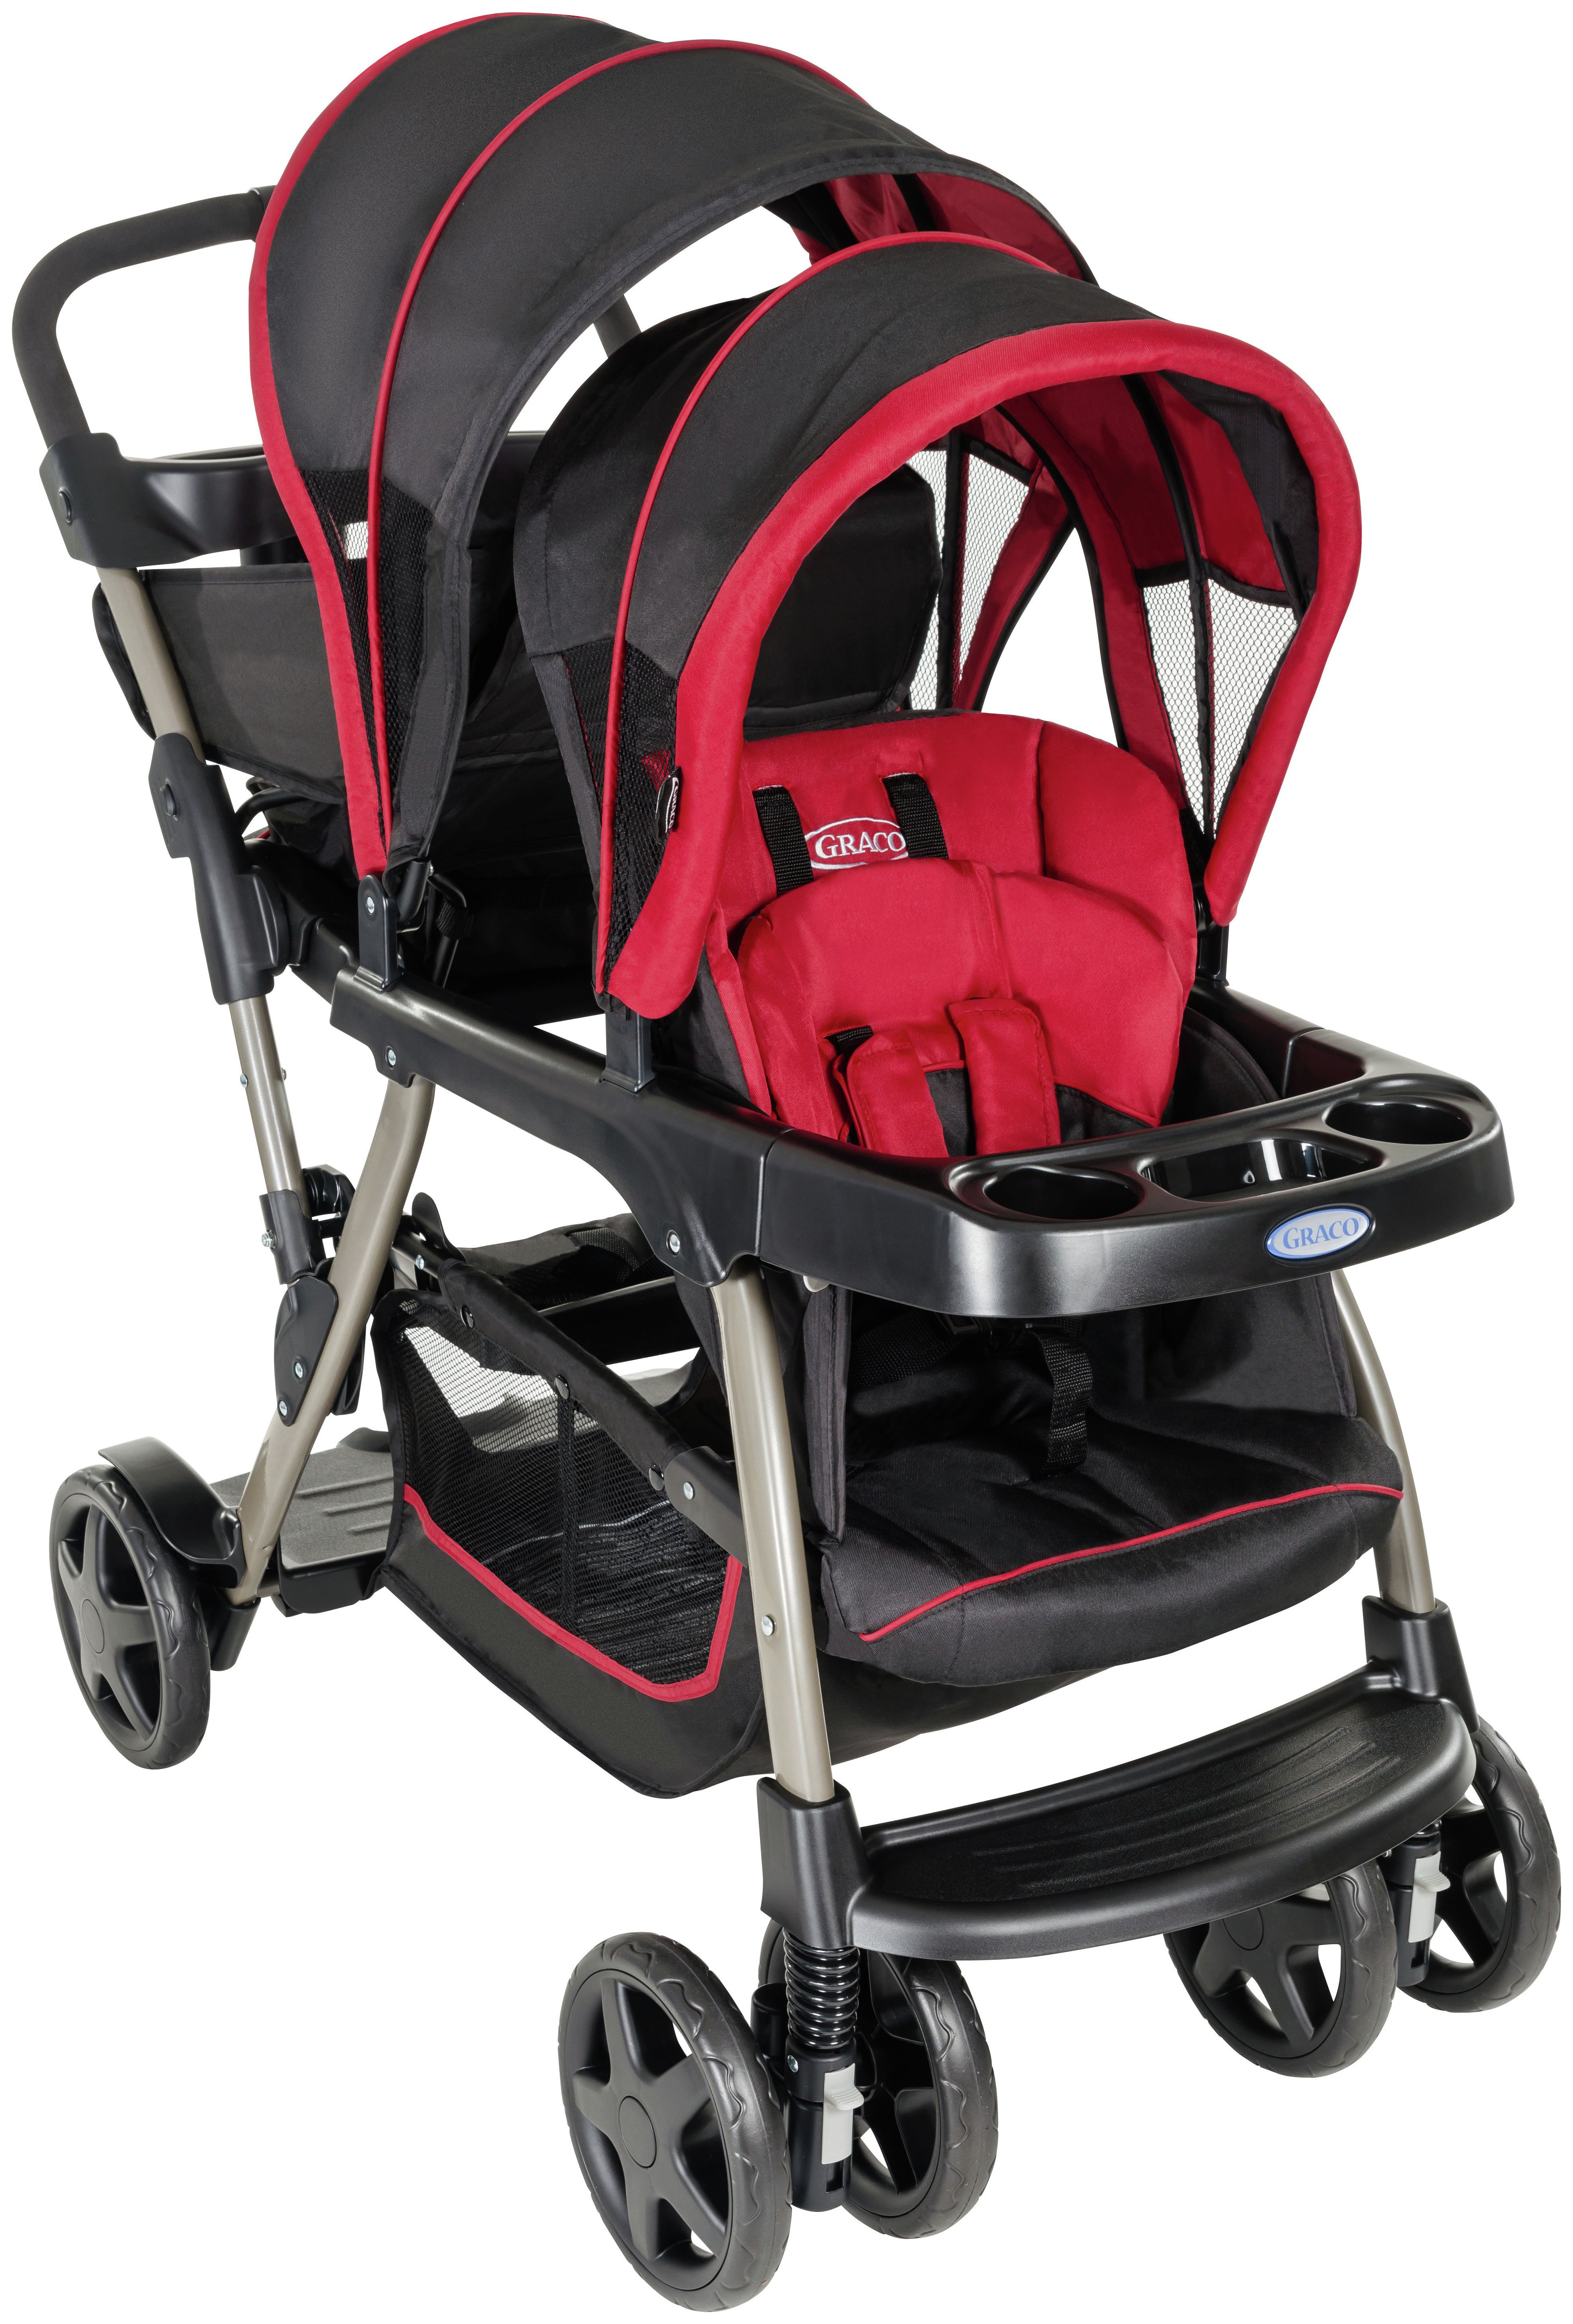 Image of Graco - Ready2Grow - Pushchair - Chilli Sport